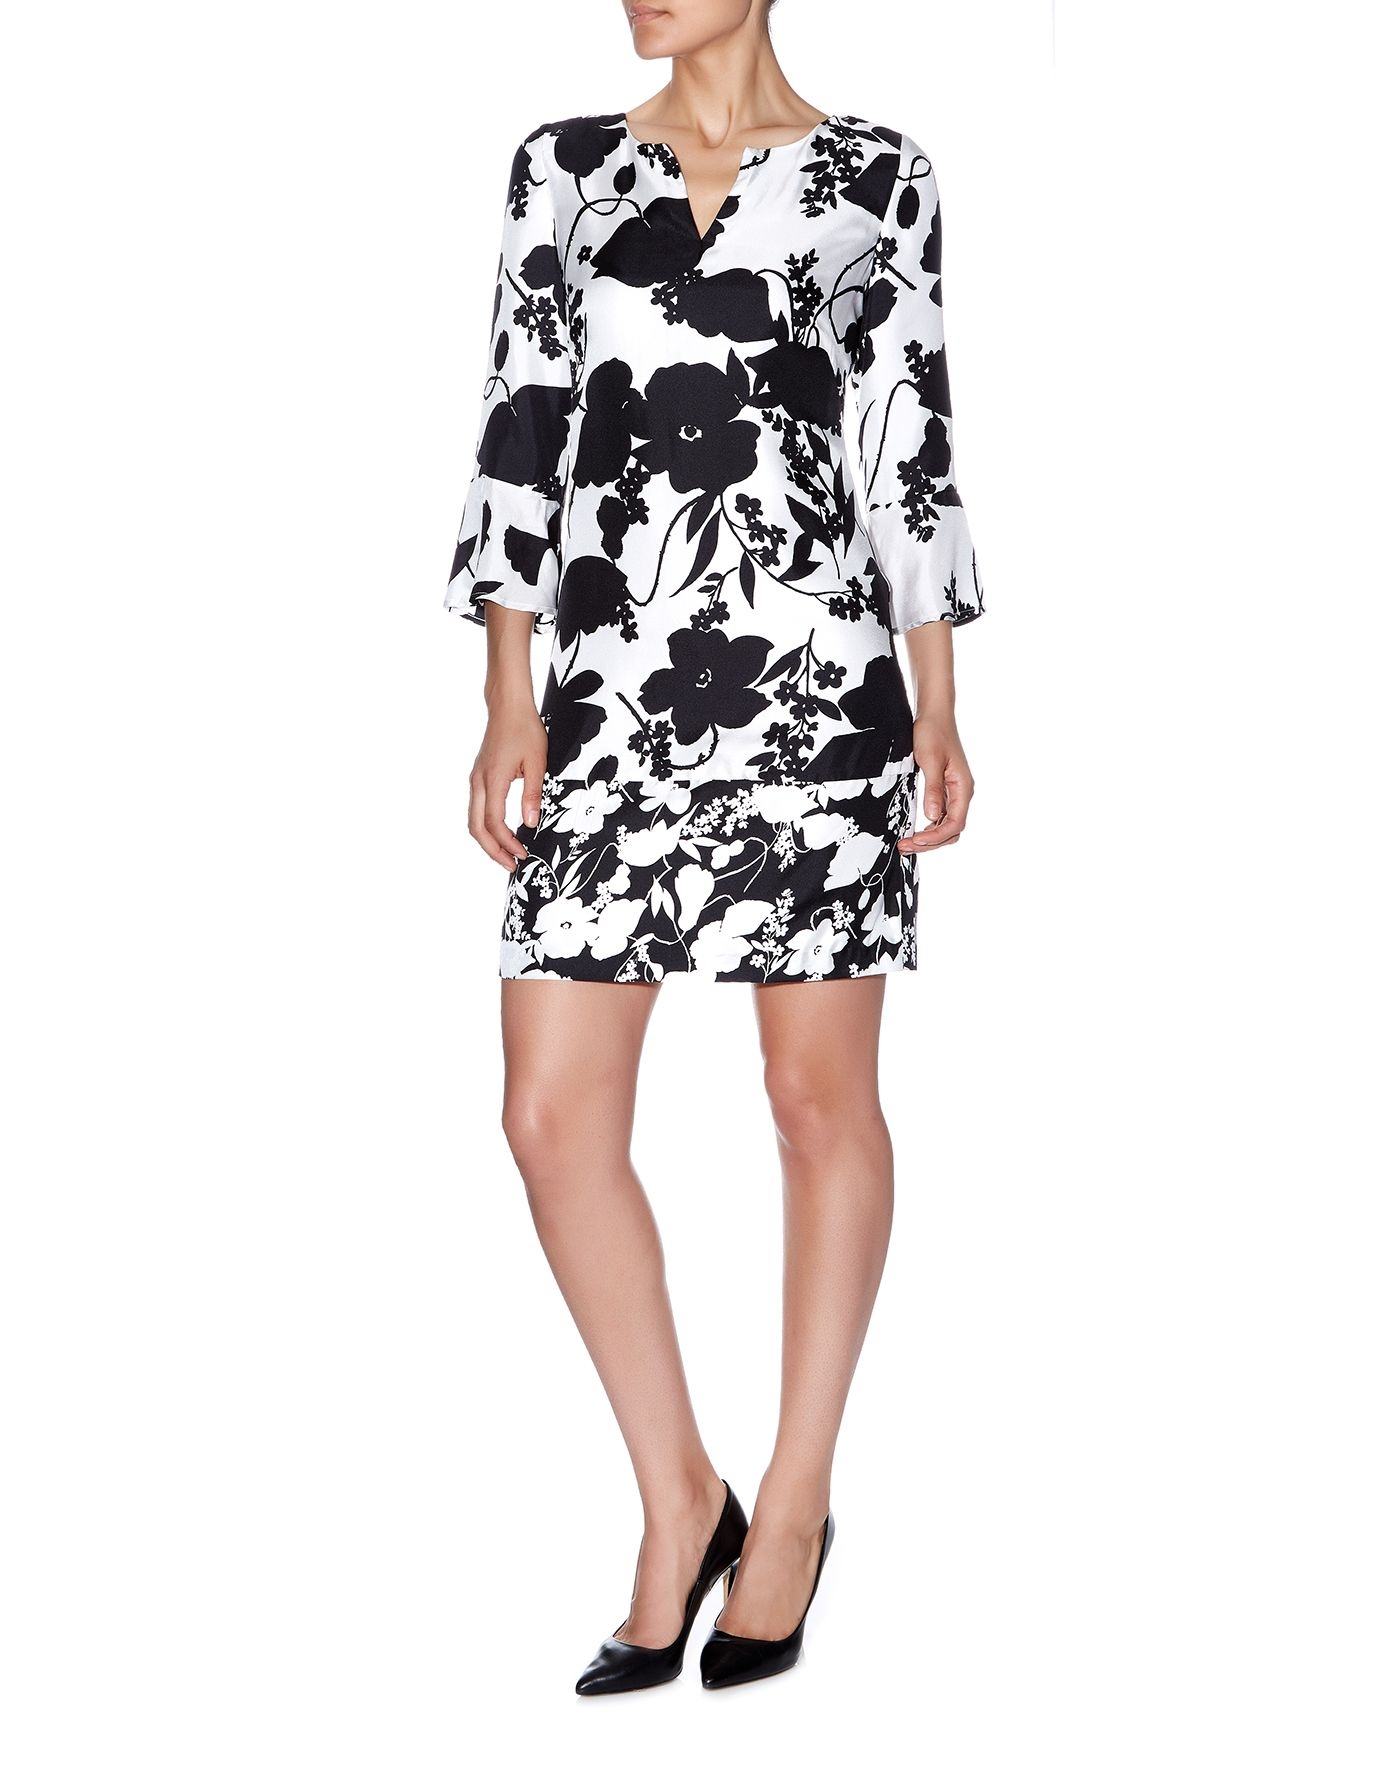 Silhouette Printed Shift Dress